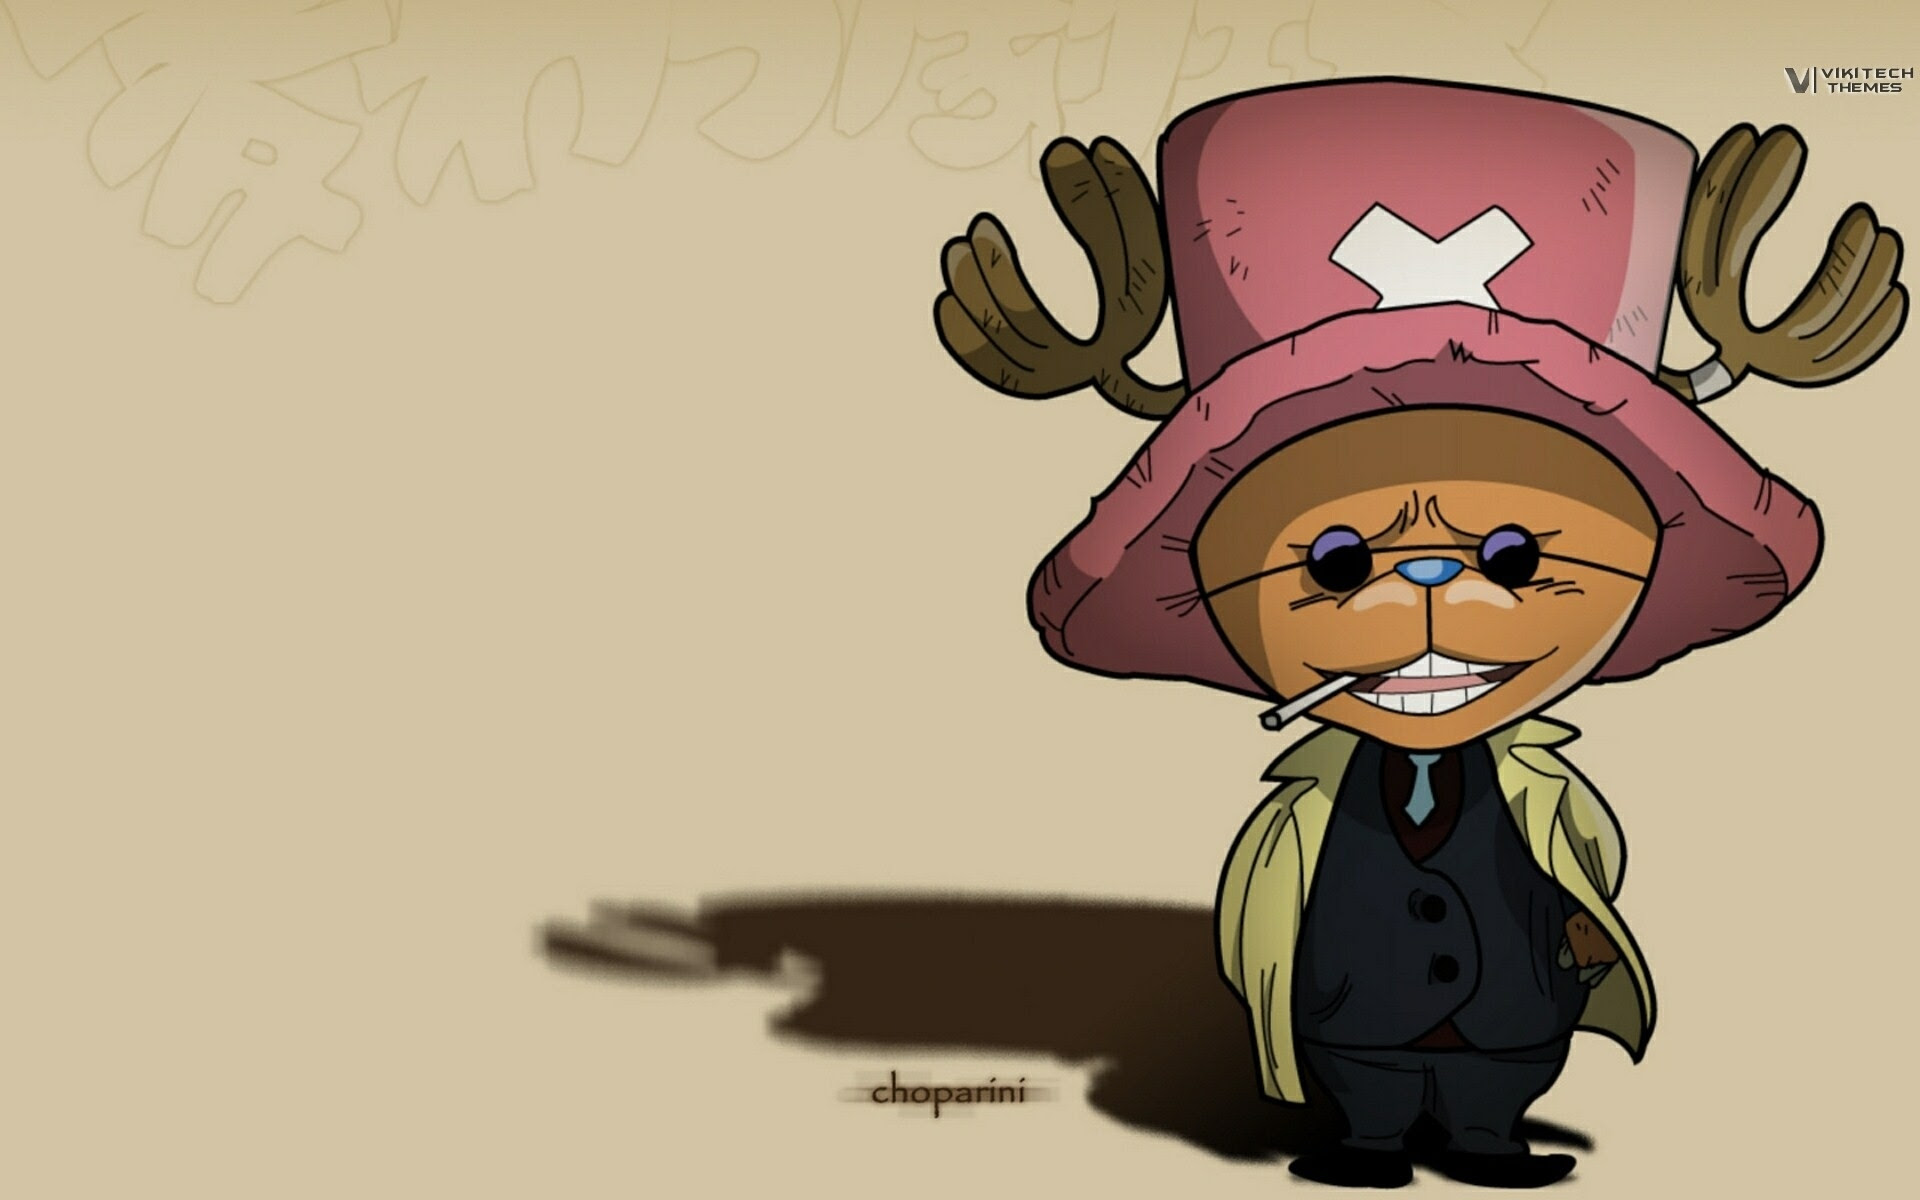 One Piece Chopper Anime Tony Tony Chopper 1920x1200 Wallpaper Anime One Piece Hd Desktop Wallpaper